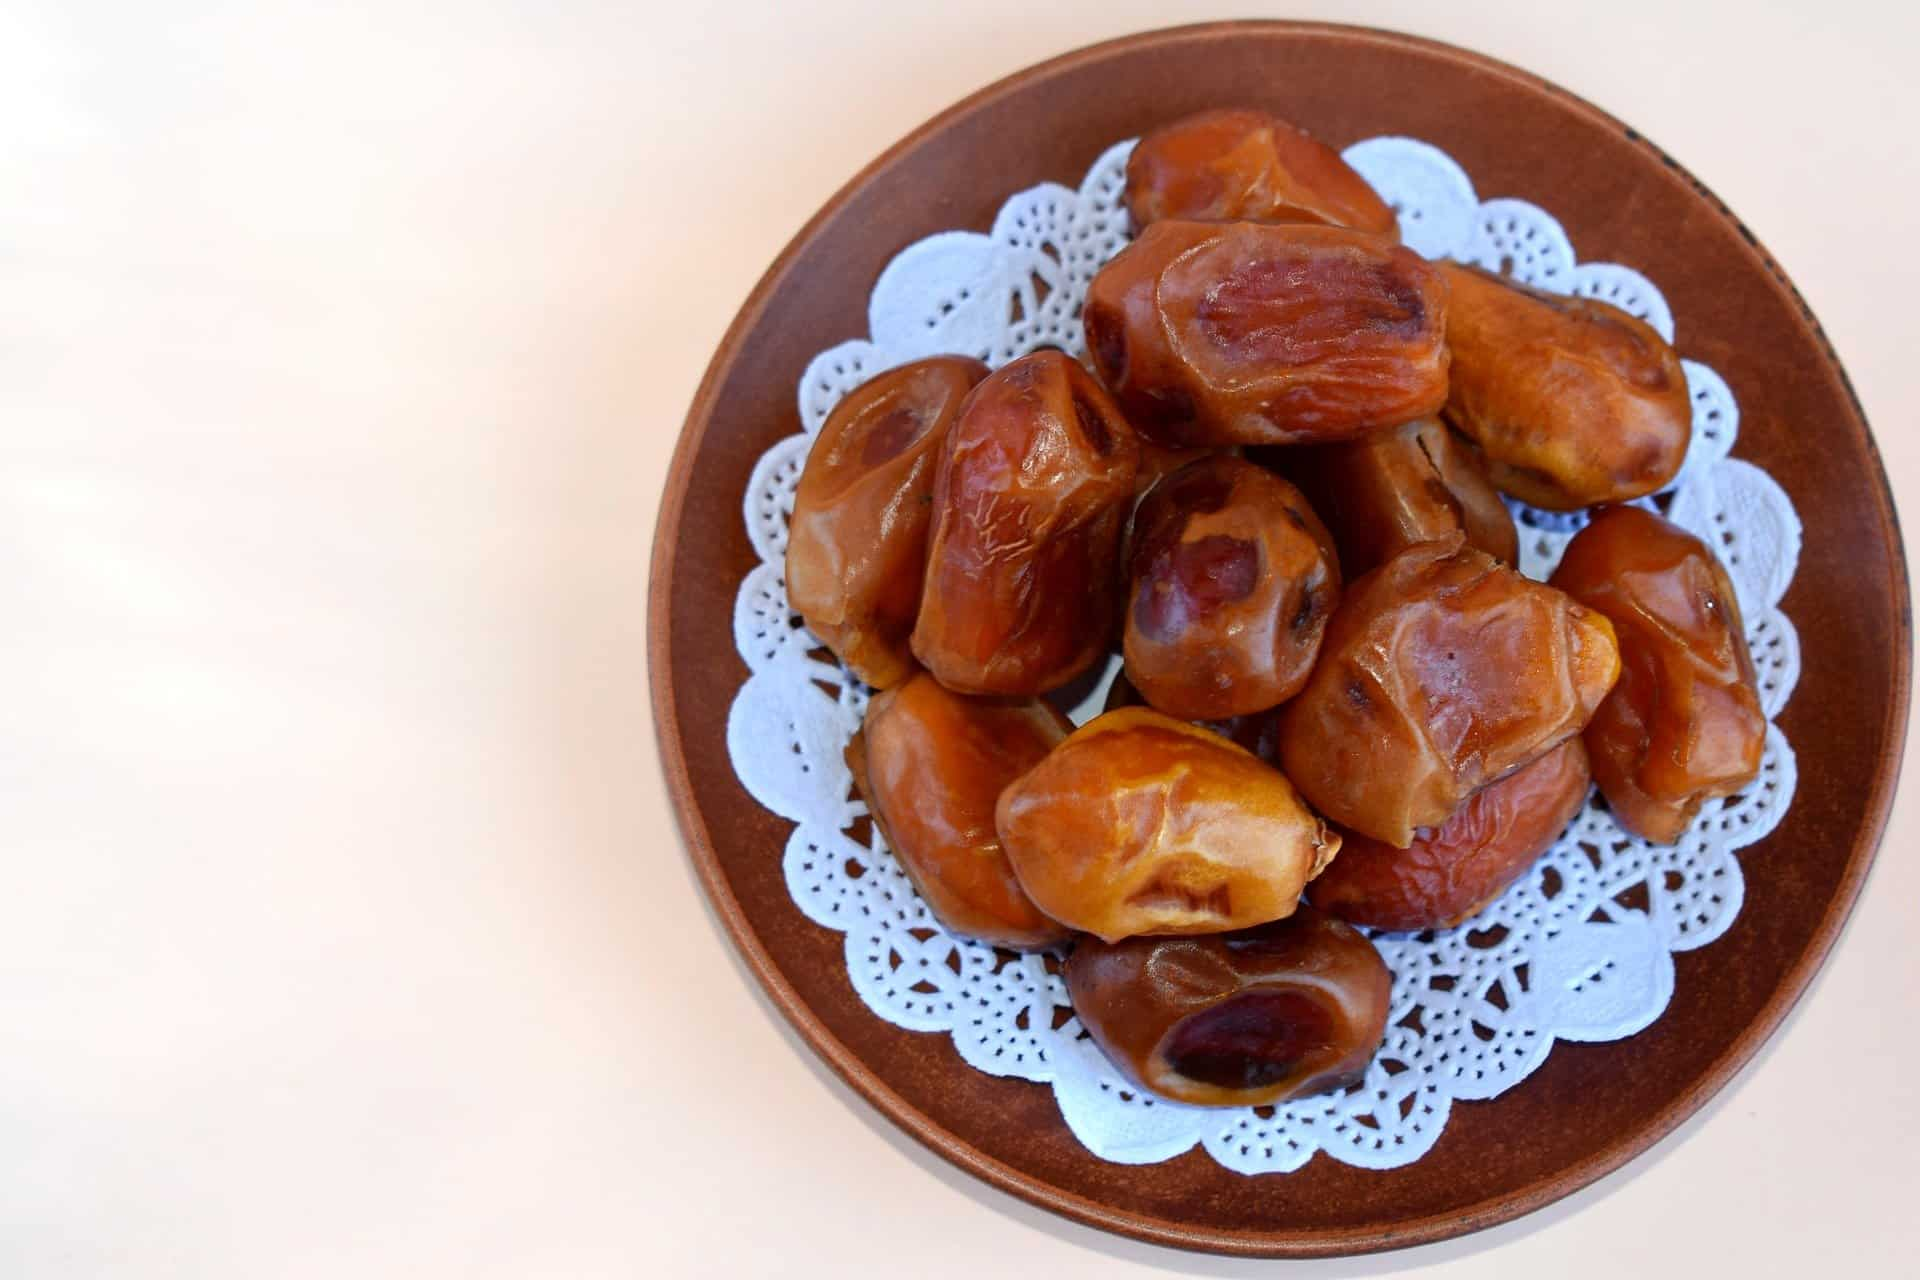 What is the Best Time to Eat Dates to Lose Weight